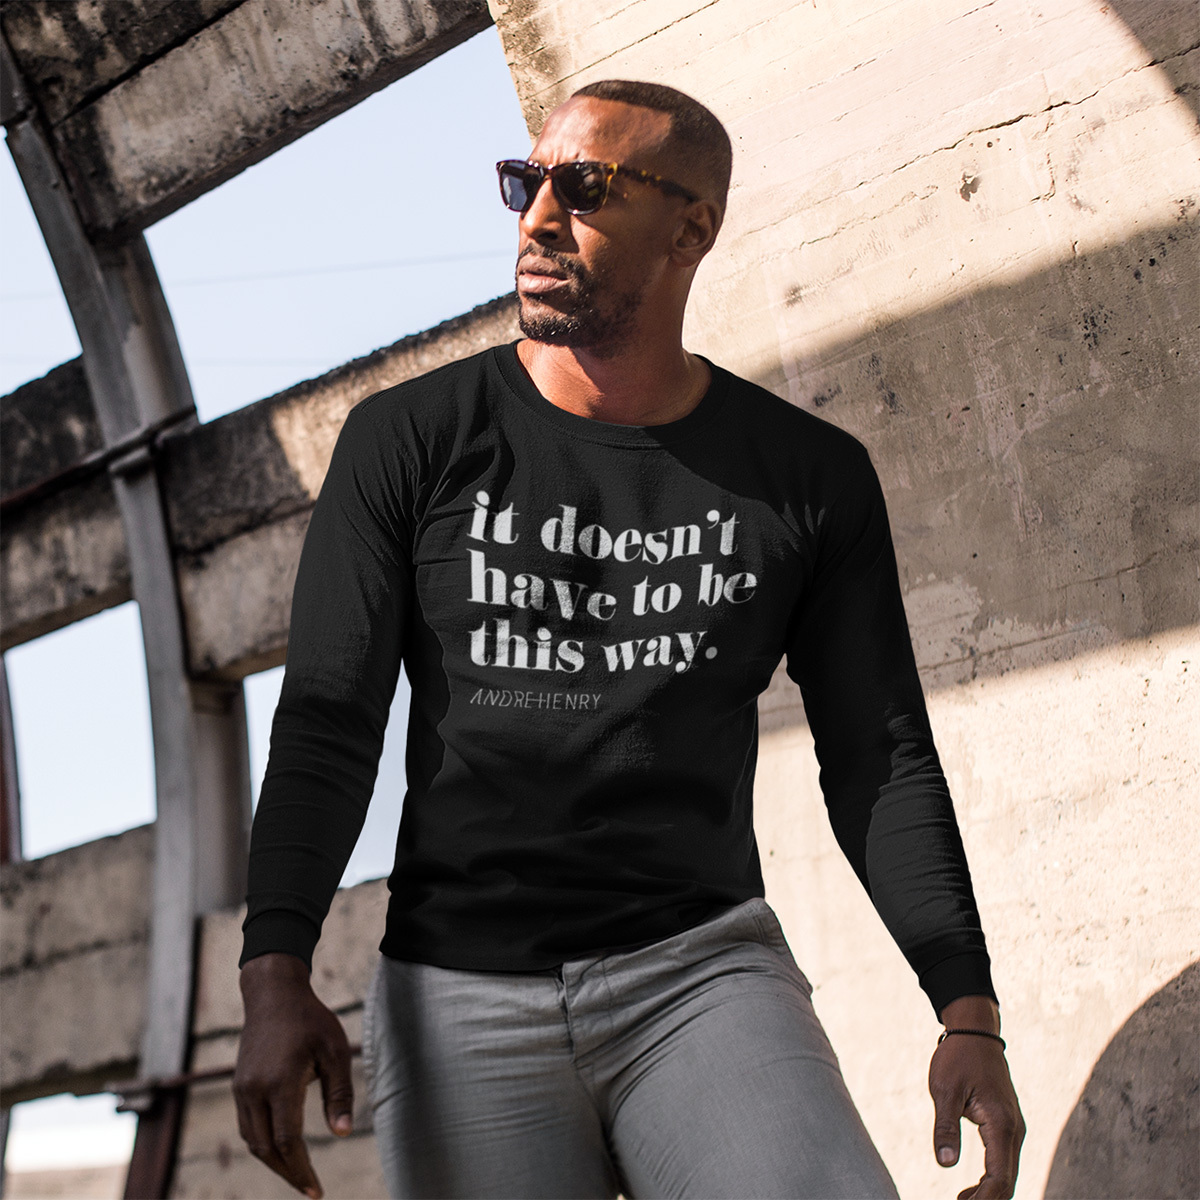 It Doesn't Have to Be This Way Unisex LongSleeve T-shirt (Black)